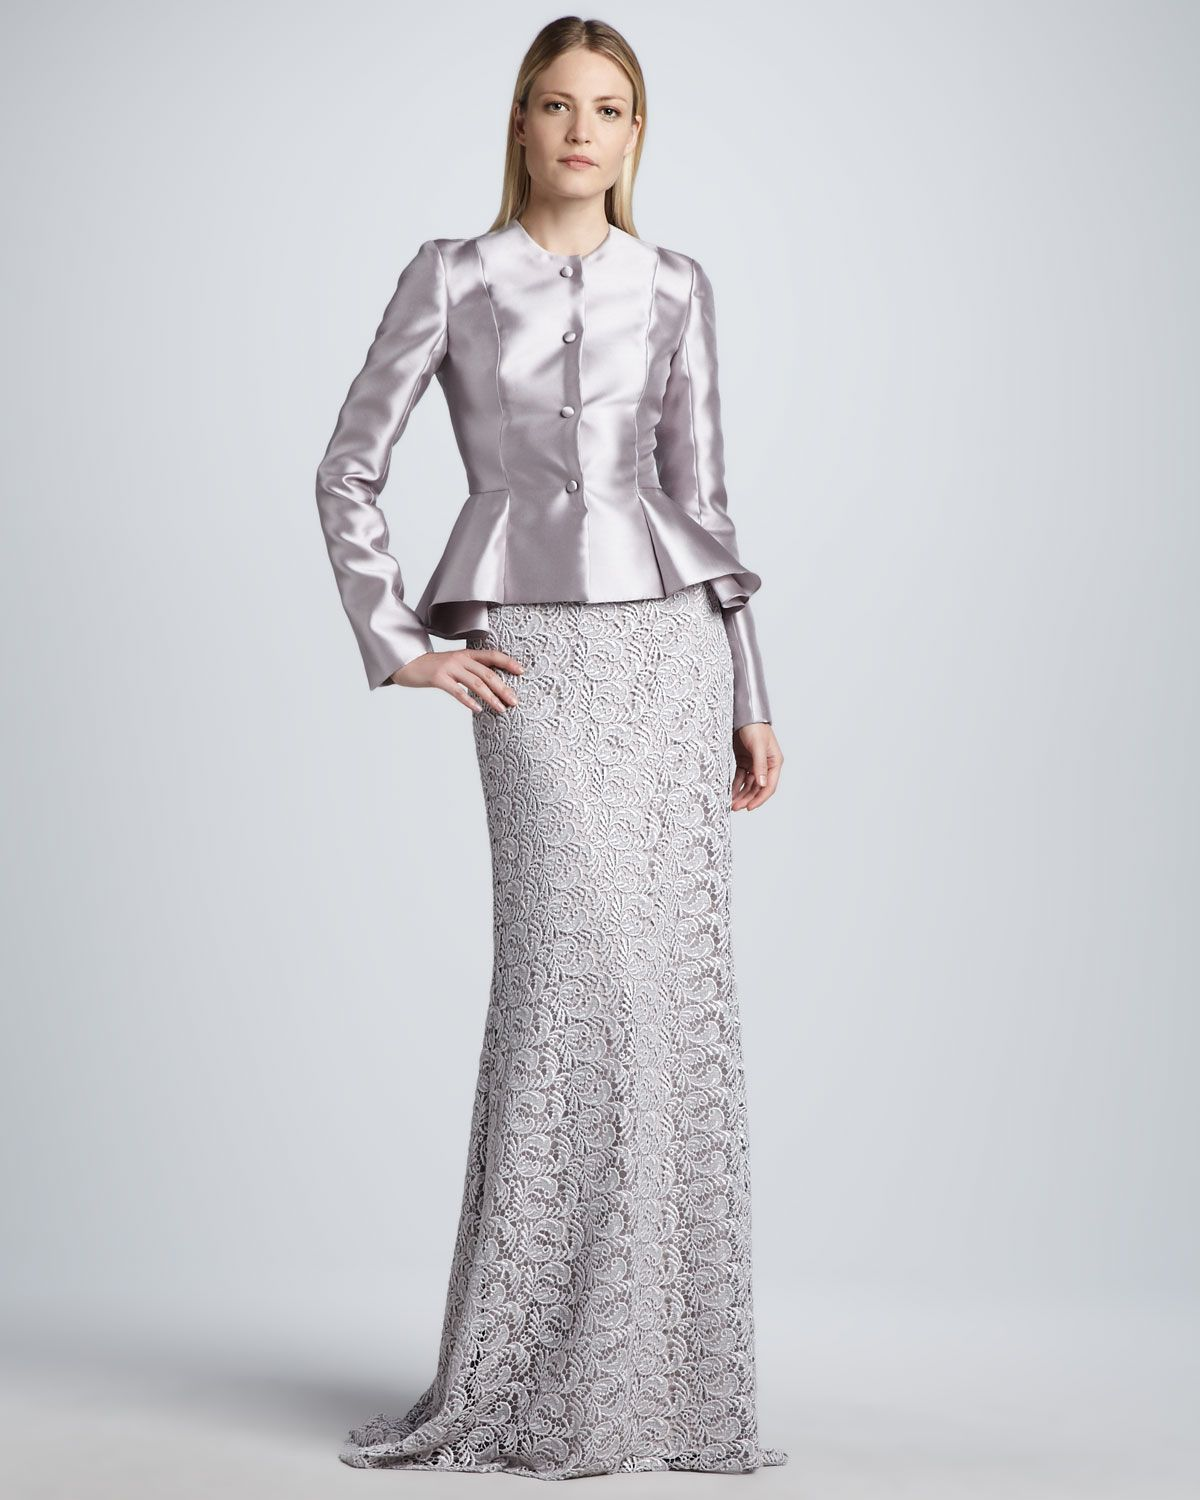 Silver peplum jacket wedding dresses pinterest peplum jacket silver peplum jacket ombrellifo Gallery